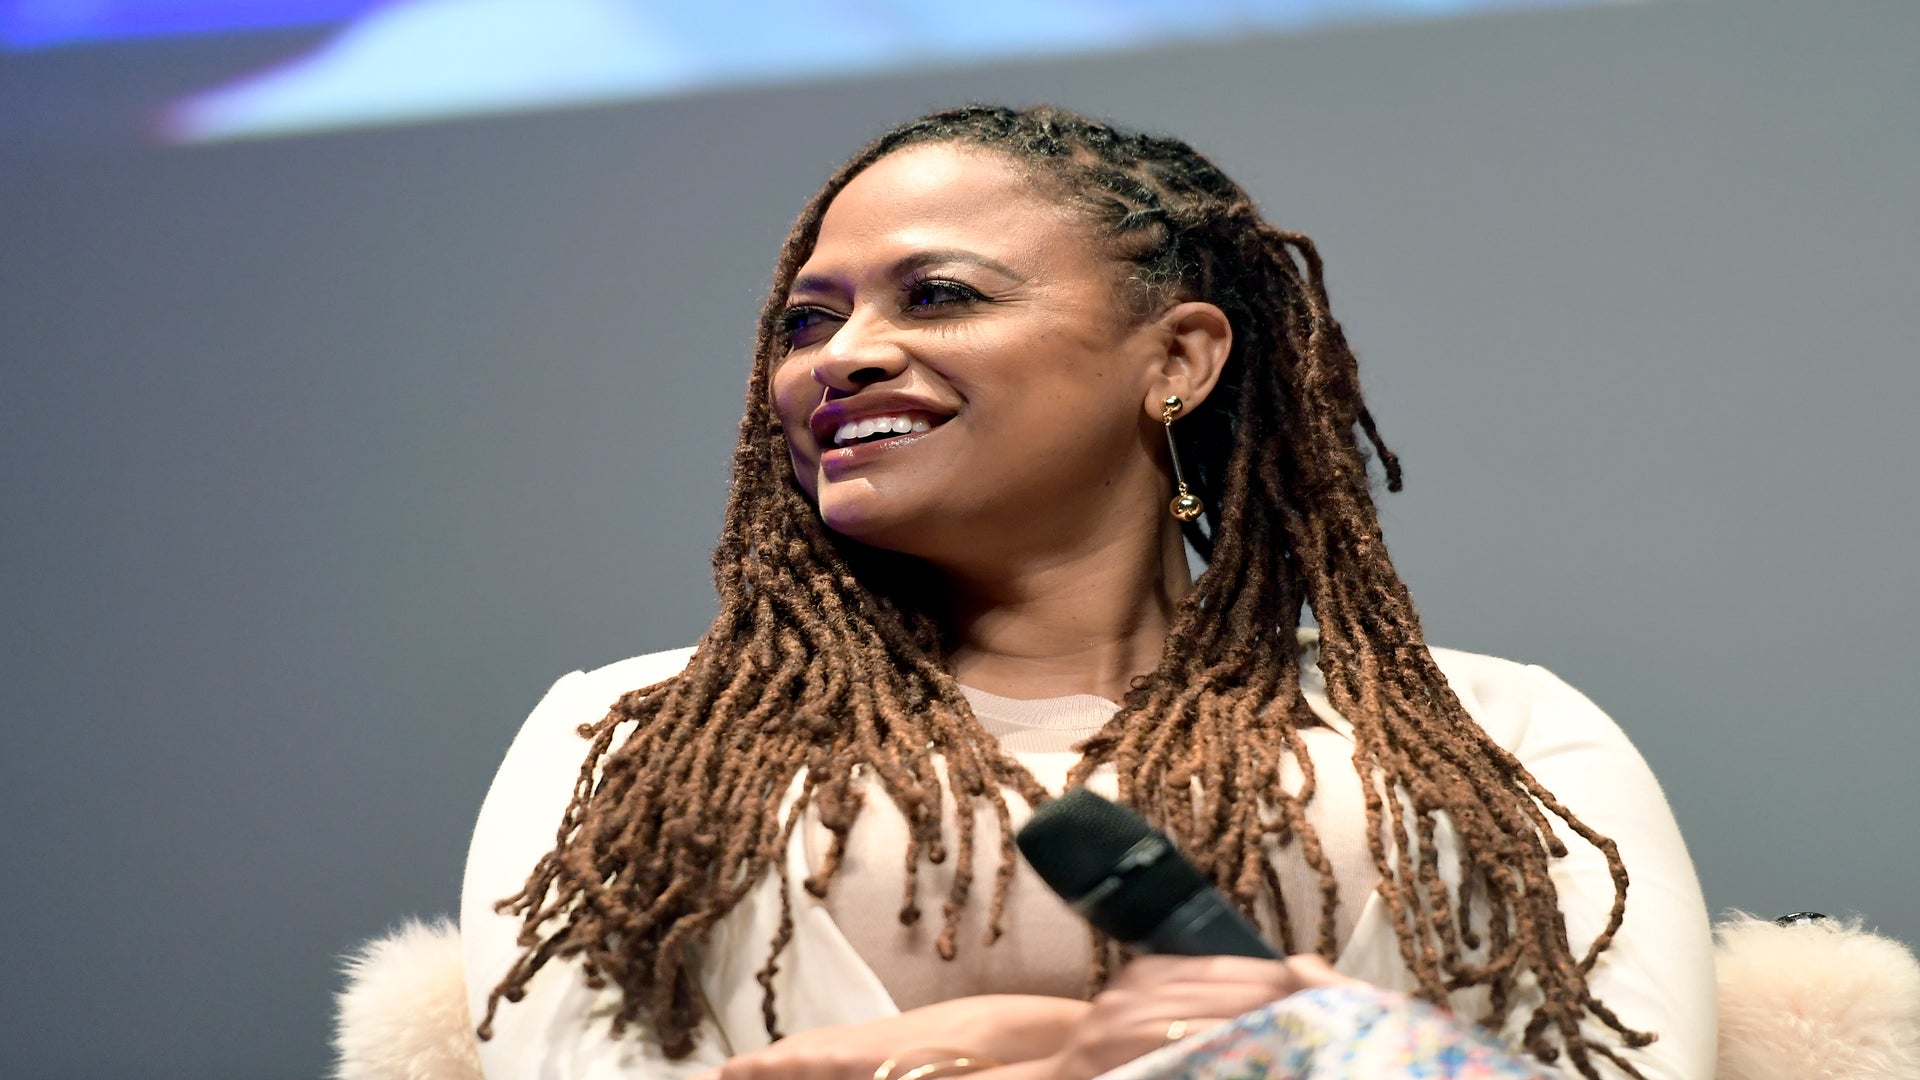 Ava DuVernay's Reaction To Finding Out Her Ancestry Is Everything